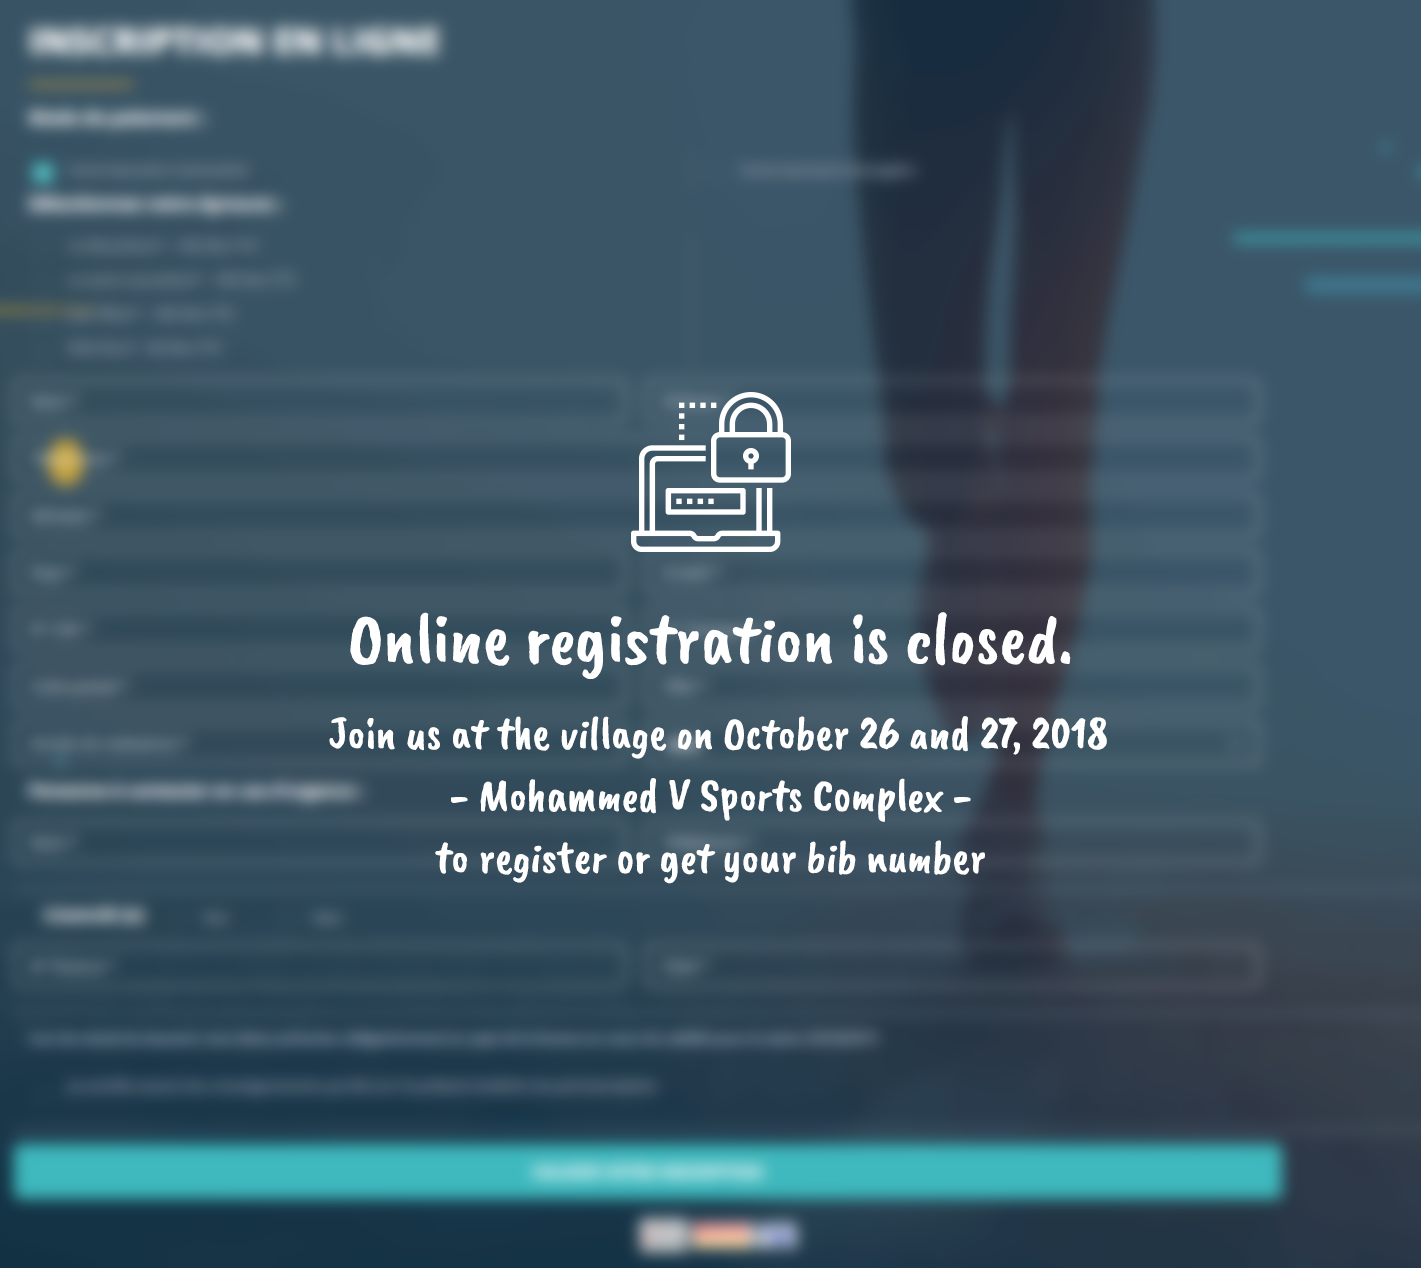 Online registration is closed